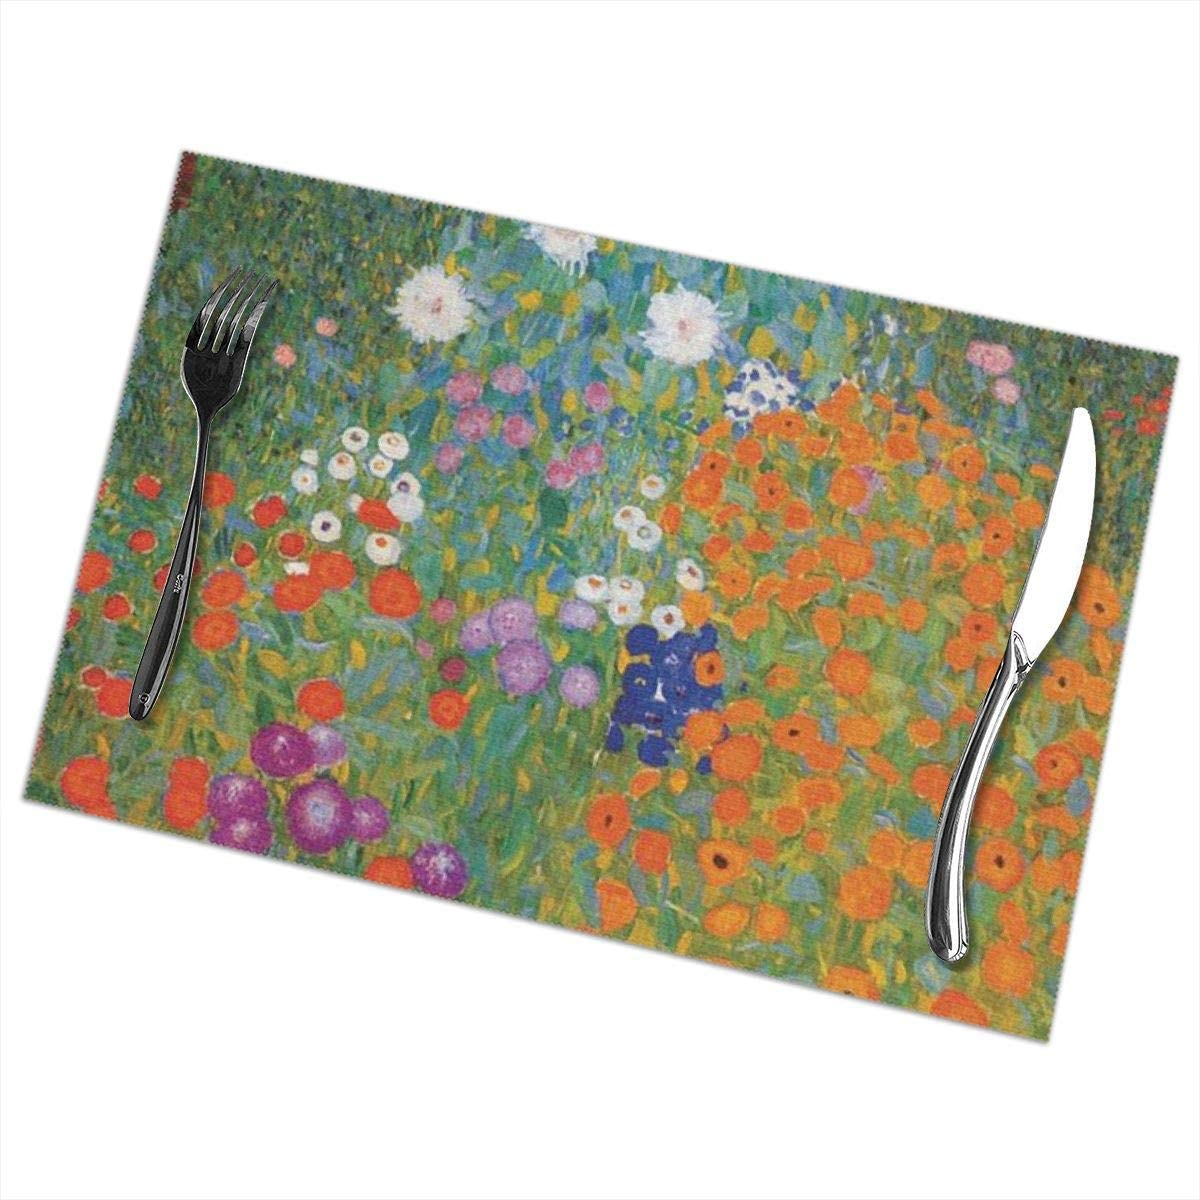 Amazon.com: NIU7A7A7 Cottage Garden Placemats for Dining Table Set